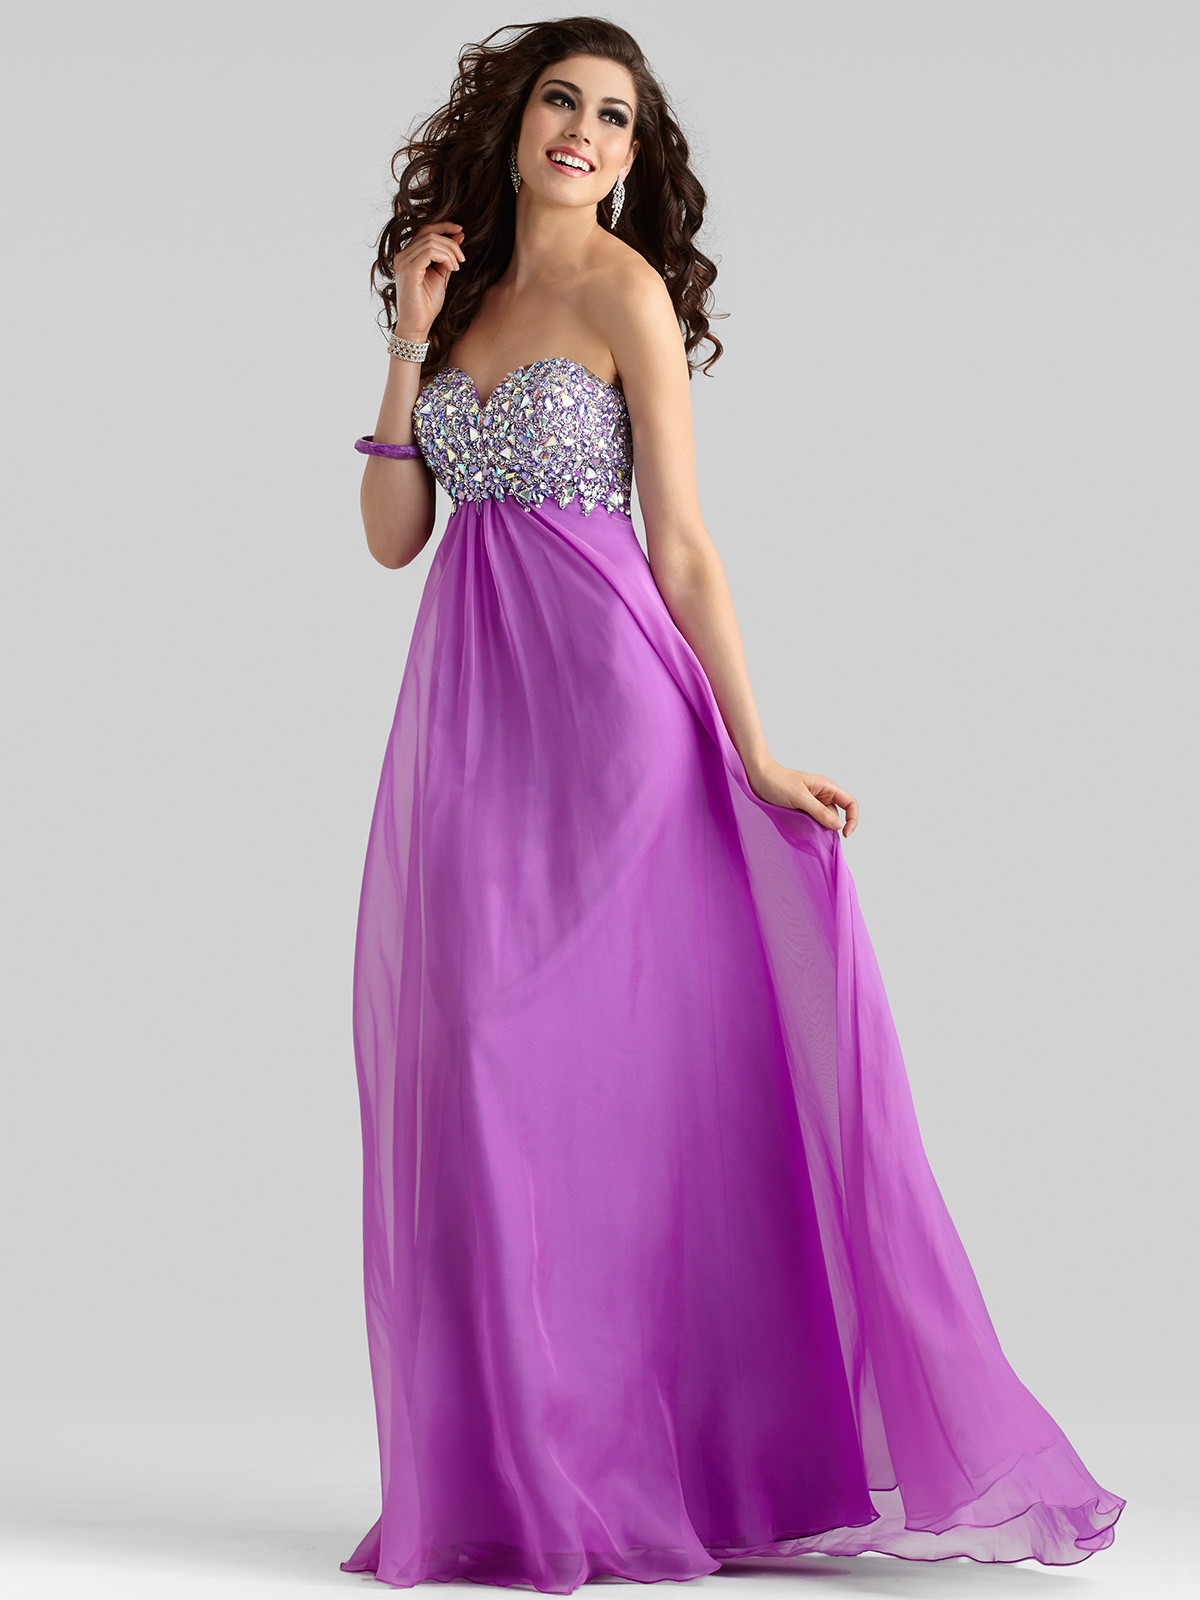 Prom Dresses Sweetheart Top - Long Dresses Online